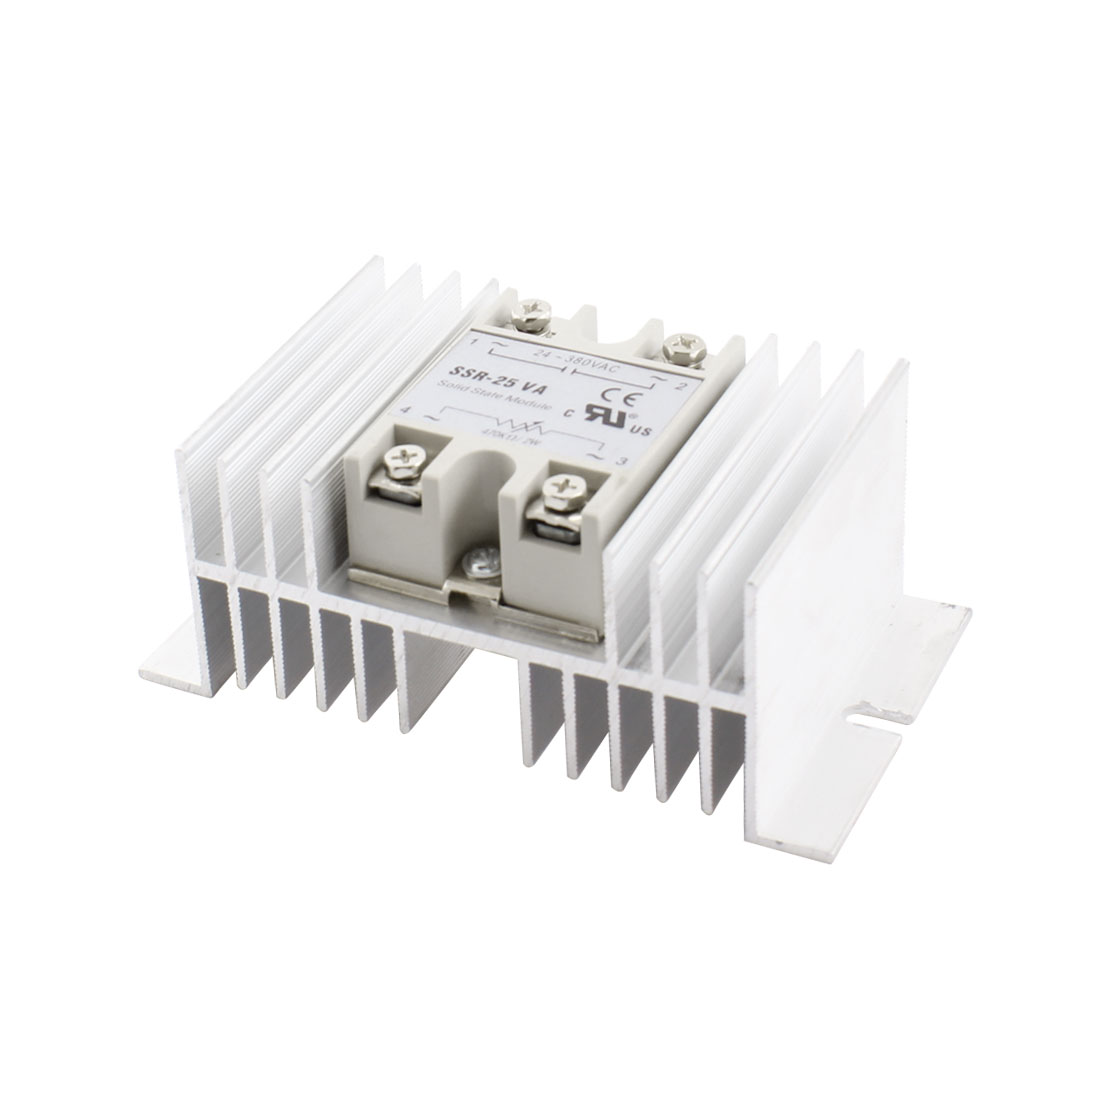 SSR-25VA AC24-380V Resistor Type Aluminum Heat Sink Single SSR Solid State Relay